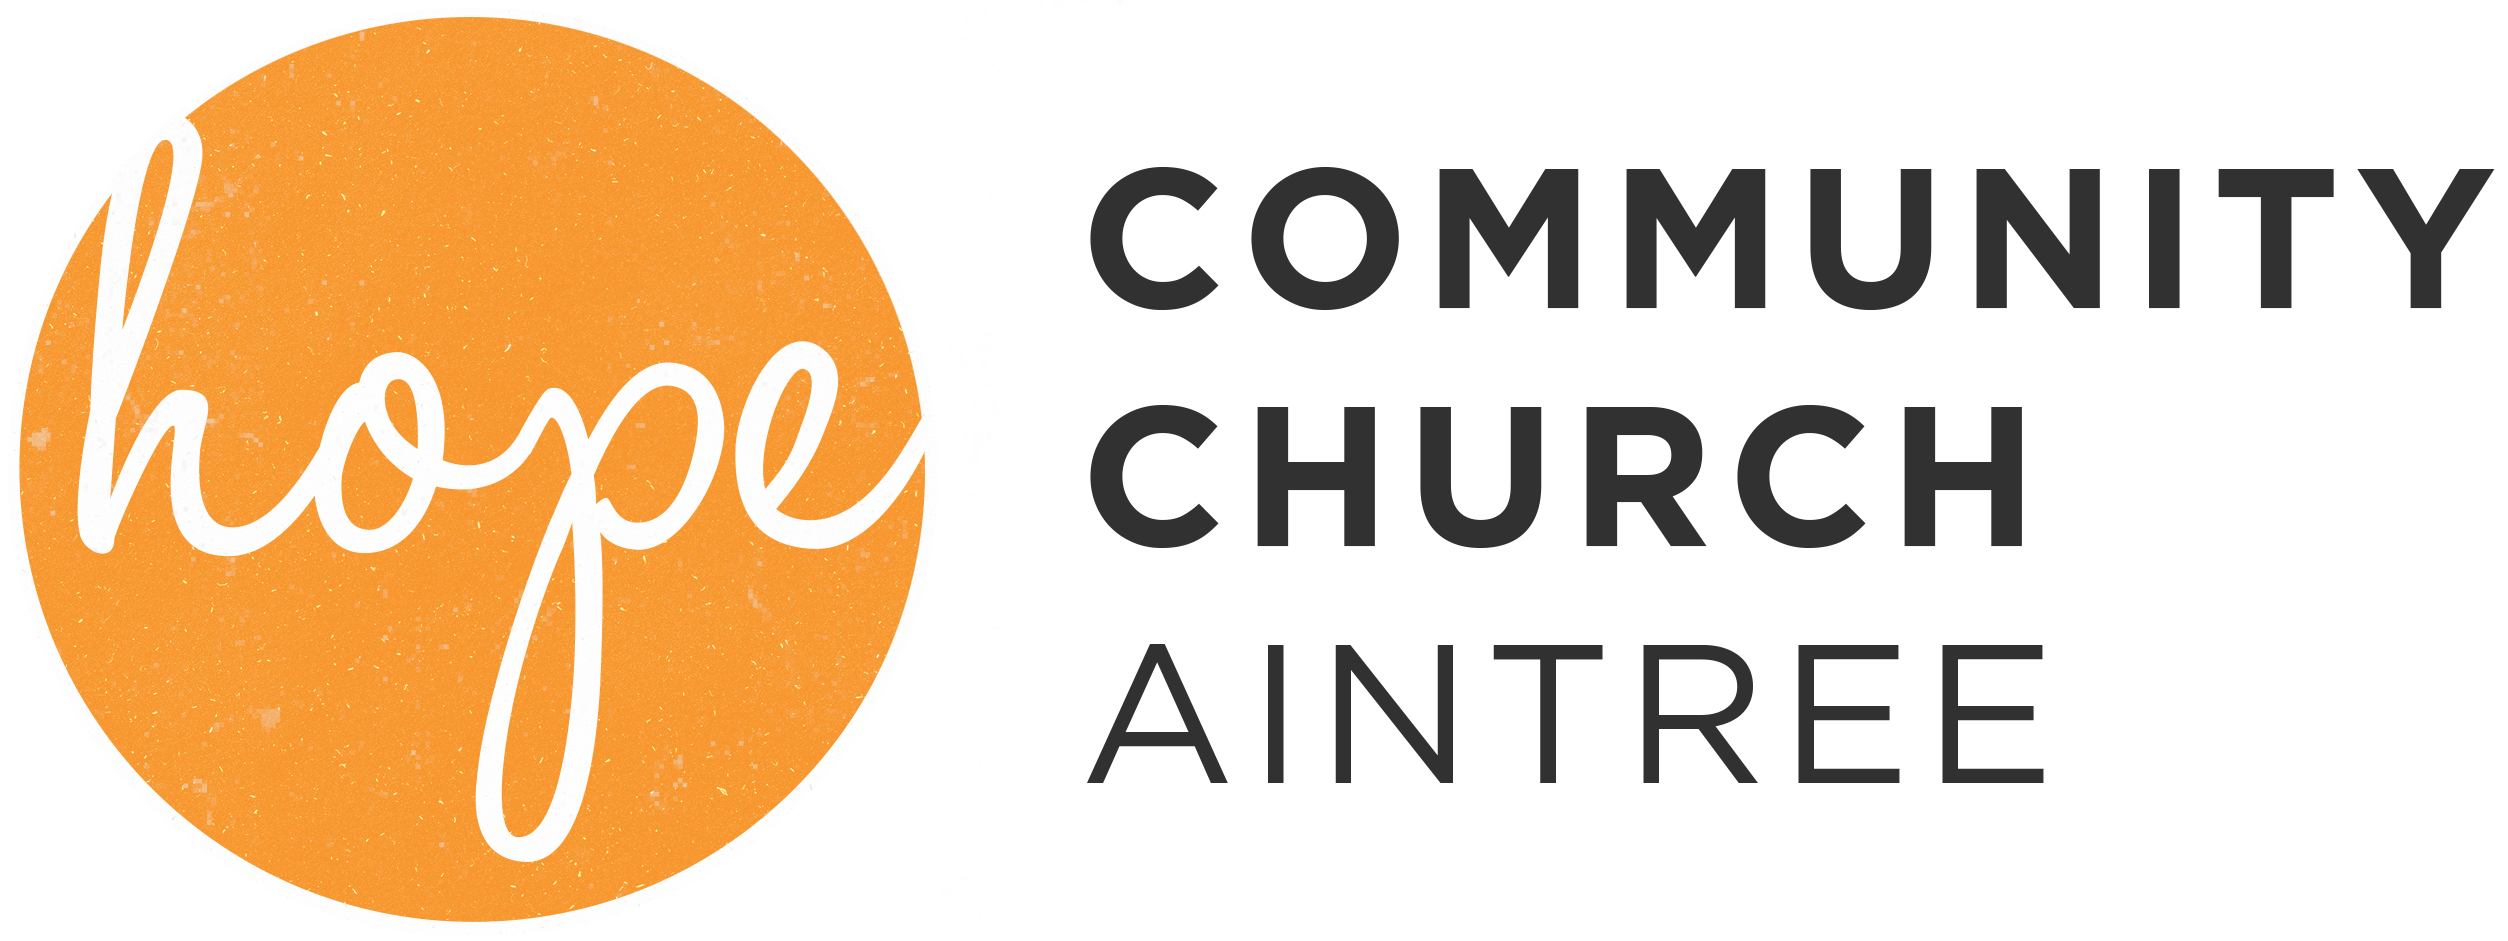 Hope Community Church Aintree